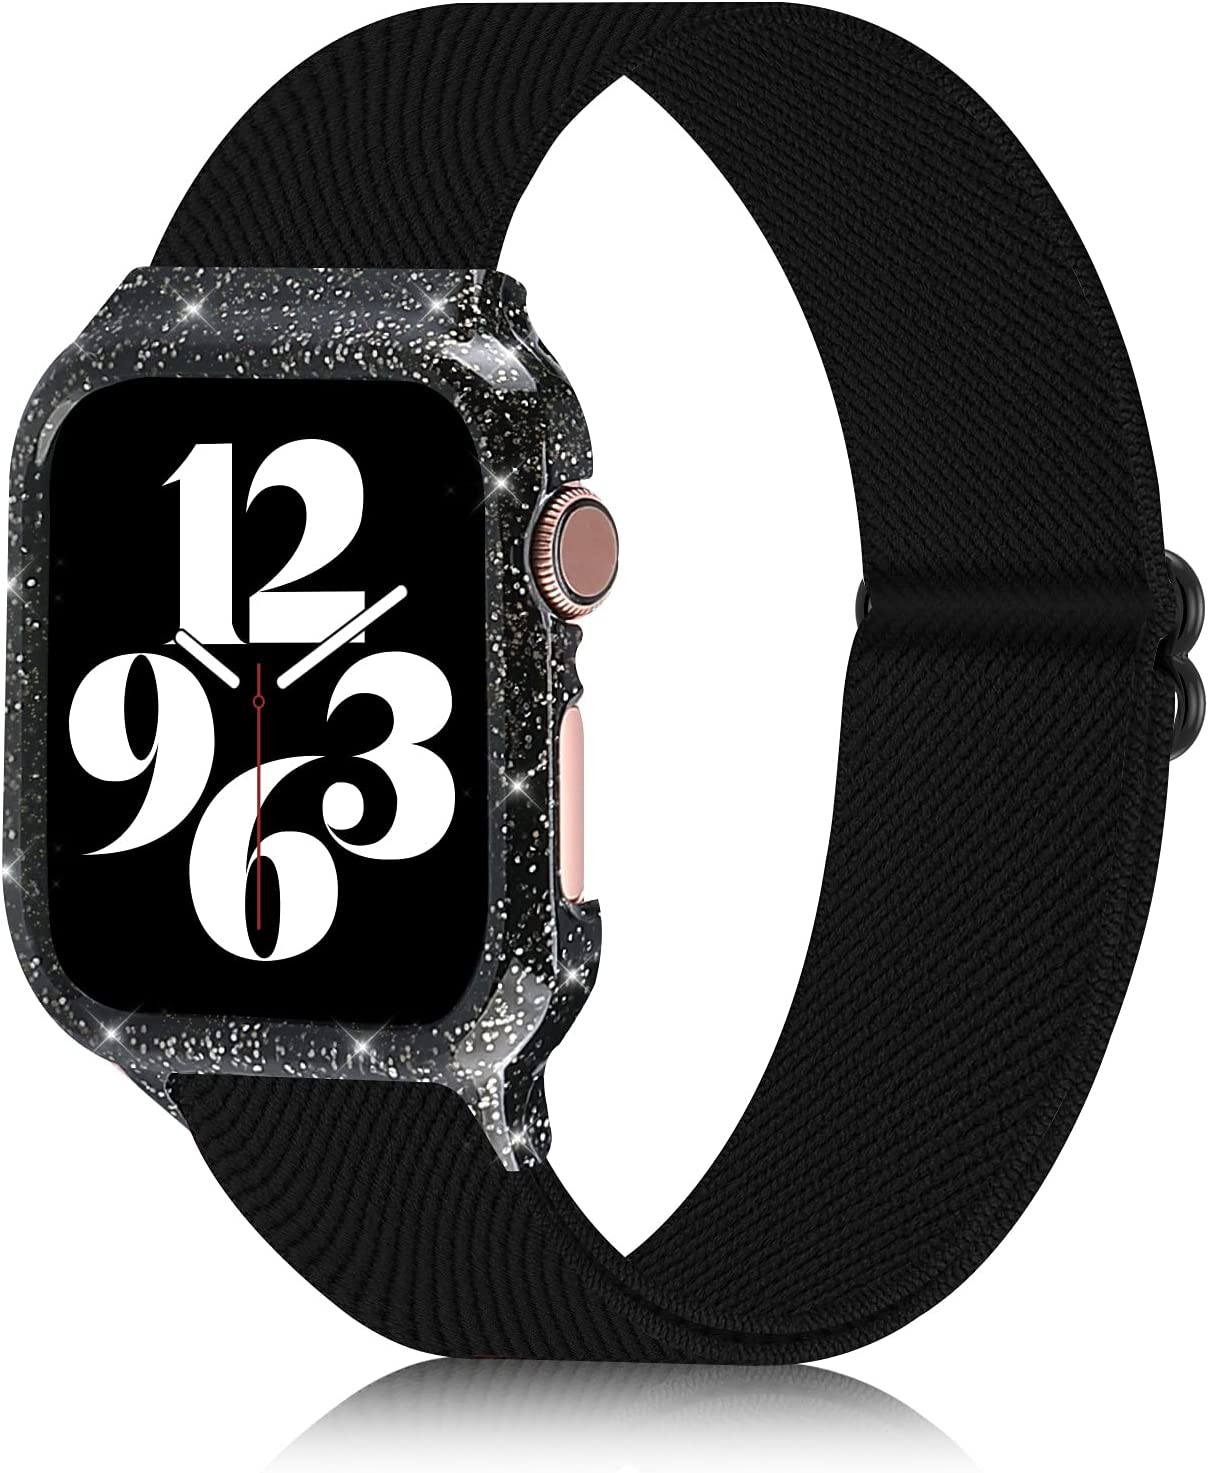 Bagoplus Compatible with Apple Watch Bands 38mm 40mm 42mm 44mm with Protective Case, Nylon Solo Loop Adjustable Stretch Sport Elastics iWatch Bands Women Men Compatible with iWatch Series SE/6/5/4